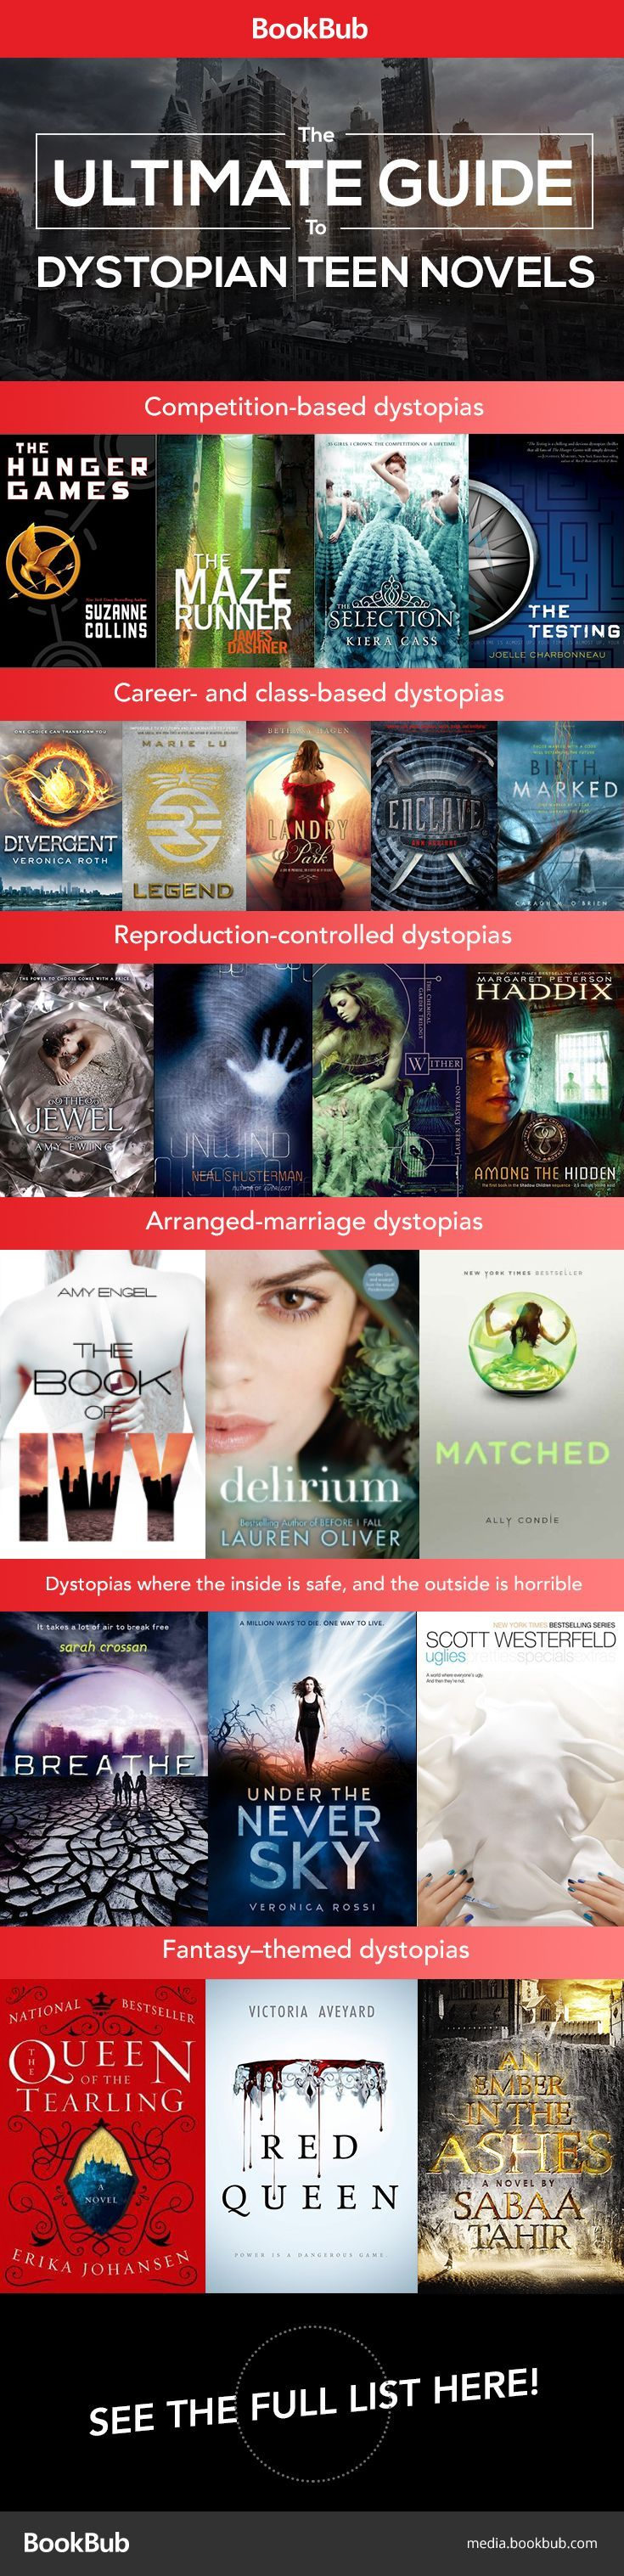 The Ultimate Guide to Dystopian Teen Novels